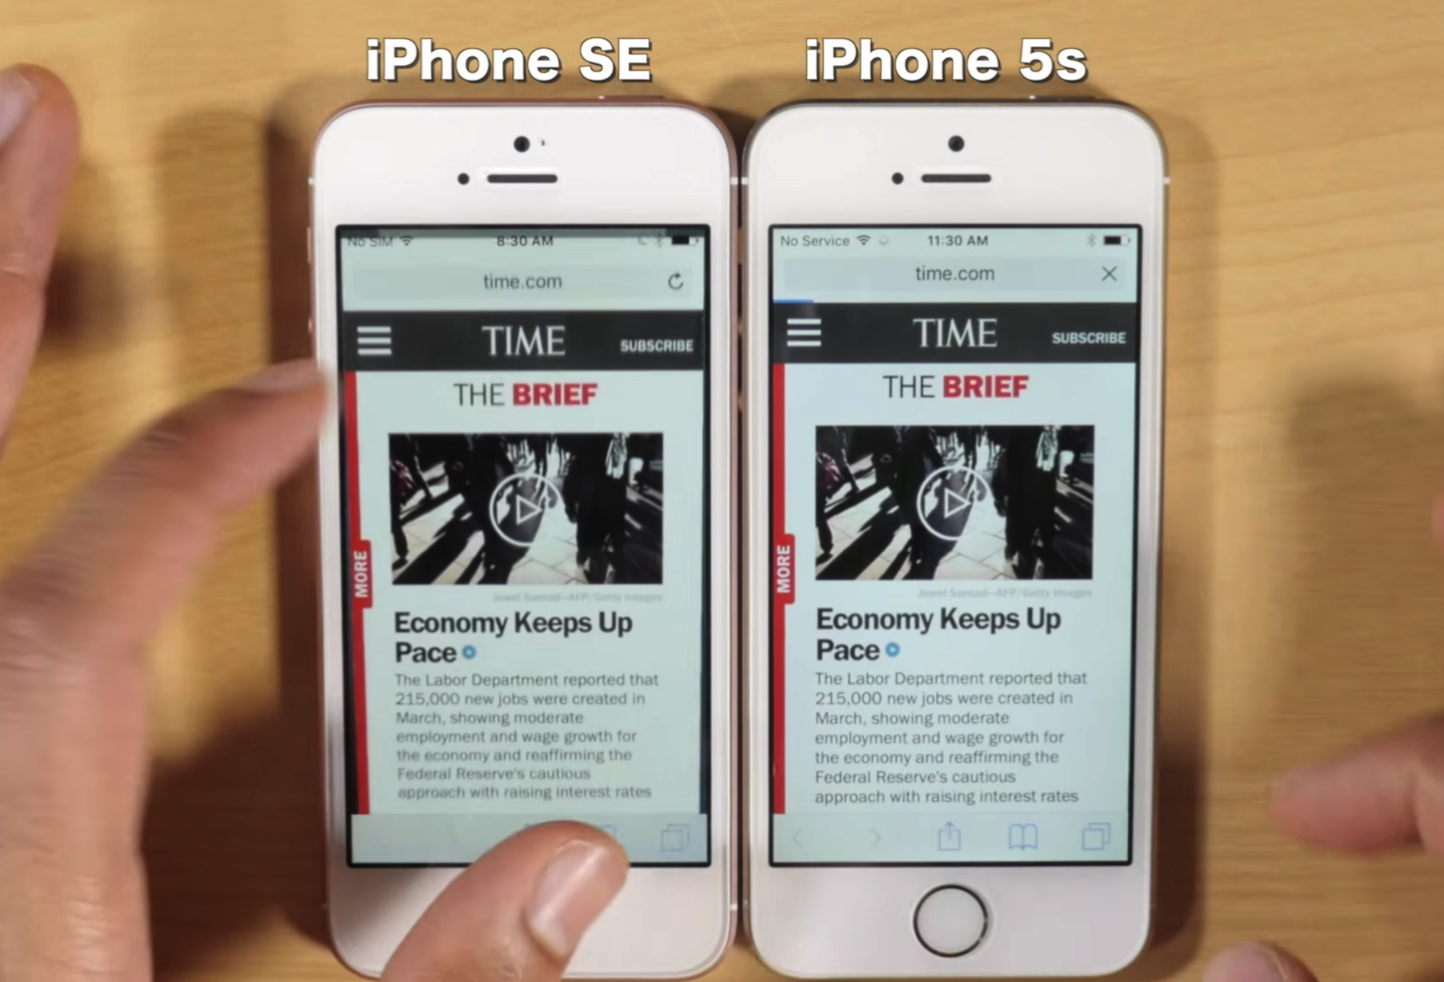 Iphonese vs iphone5s ram comparison